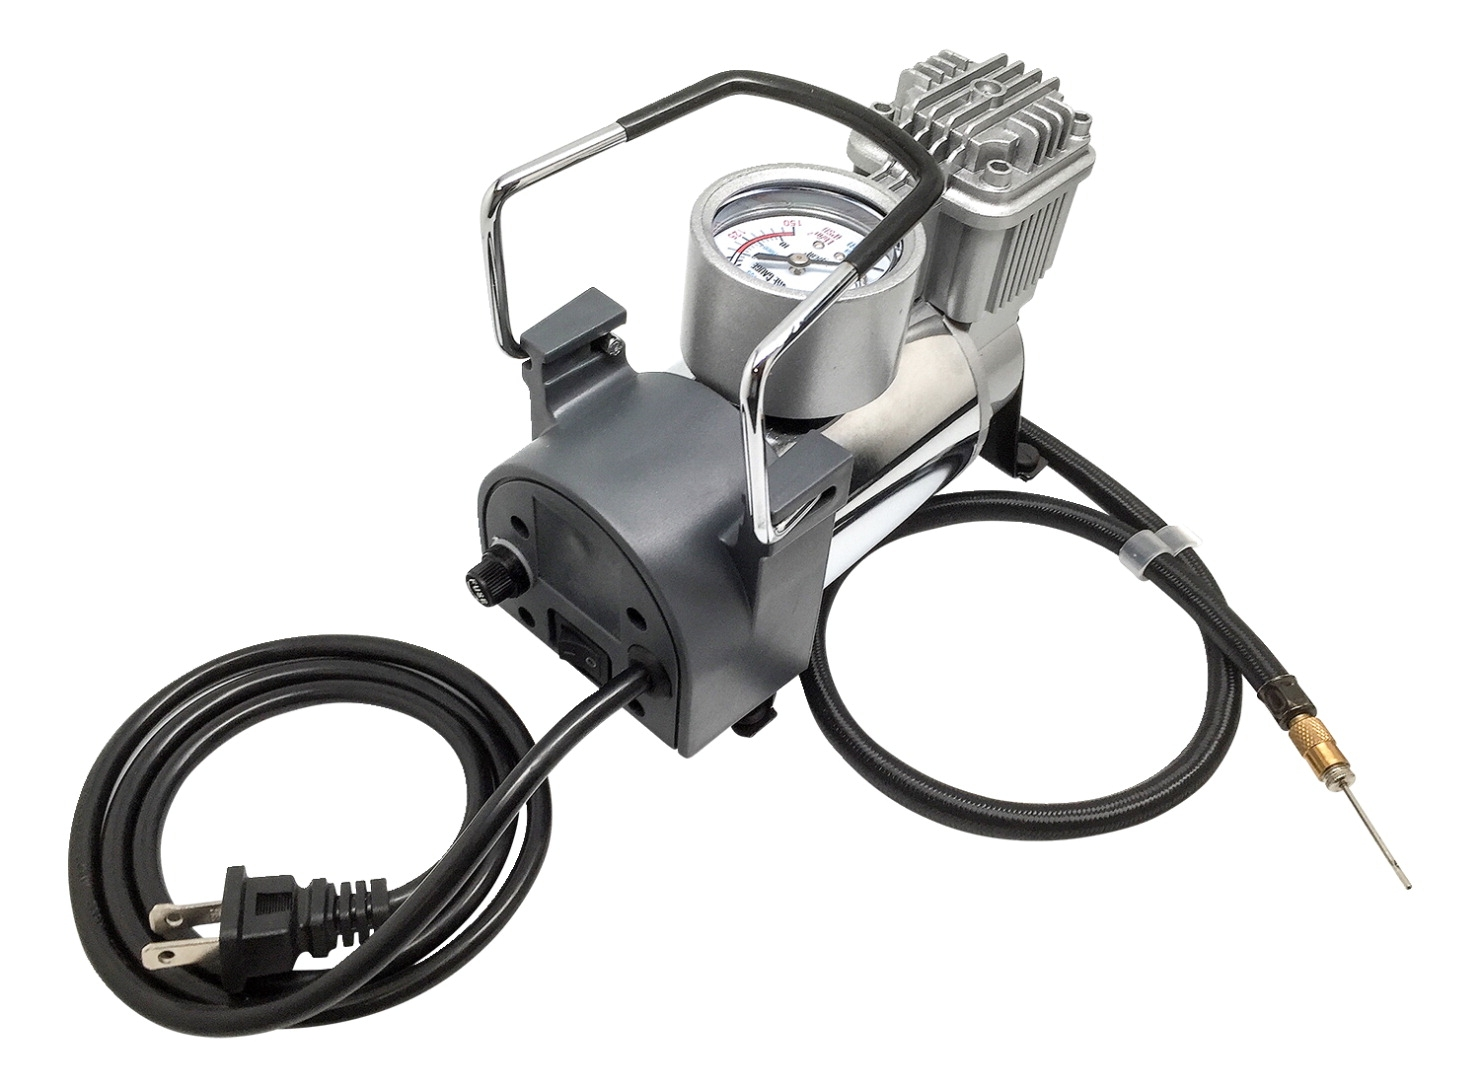 Mikasa M80 Electric Air Inflator; 110v/60hz Ac; 1/8 Hp; 40 Psi; Steel - 1507822 - Coaching Inflators 1507822